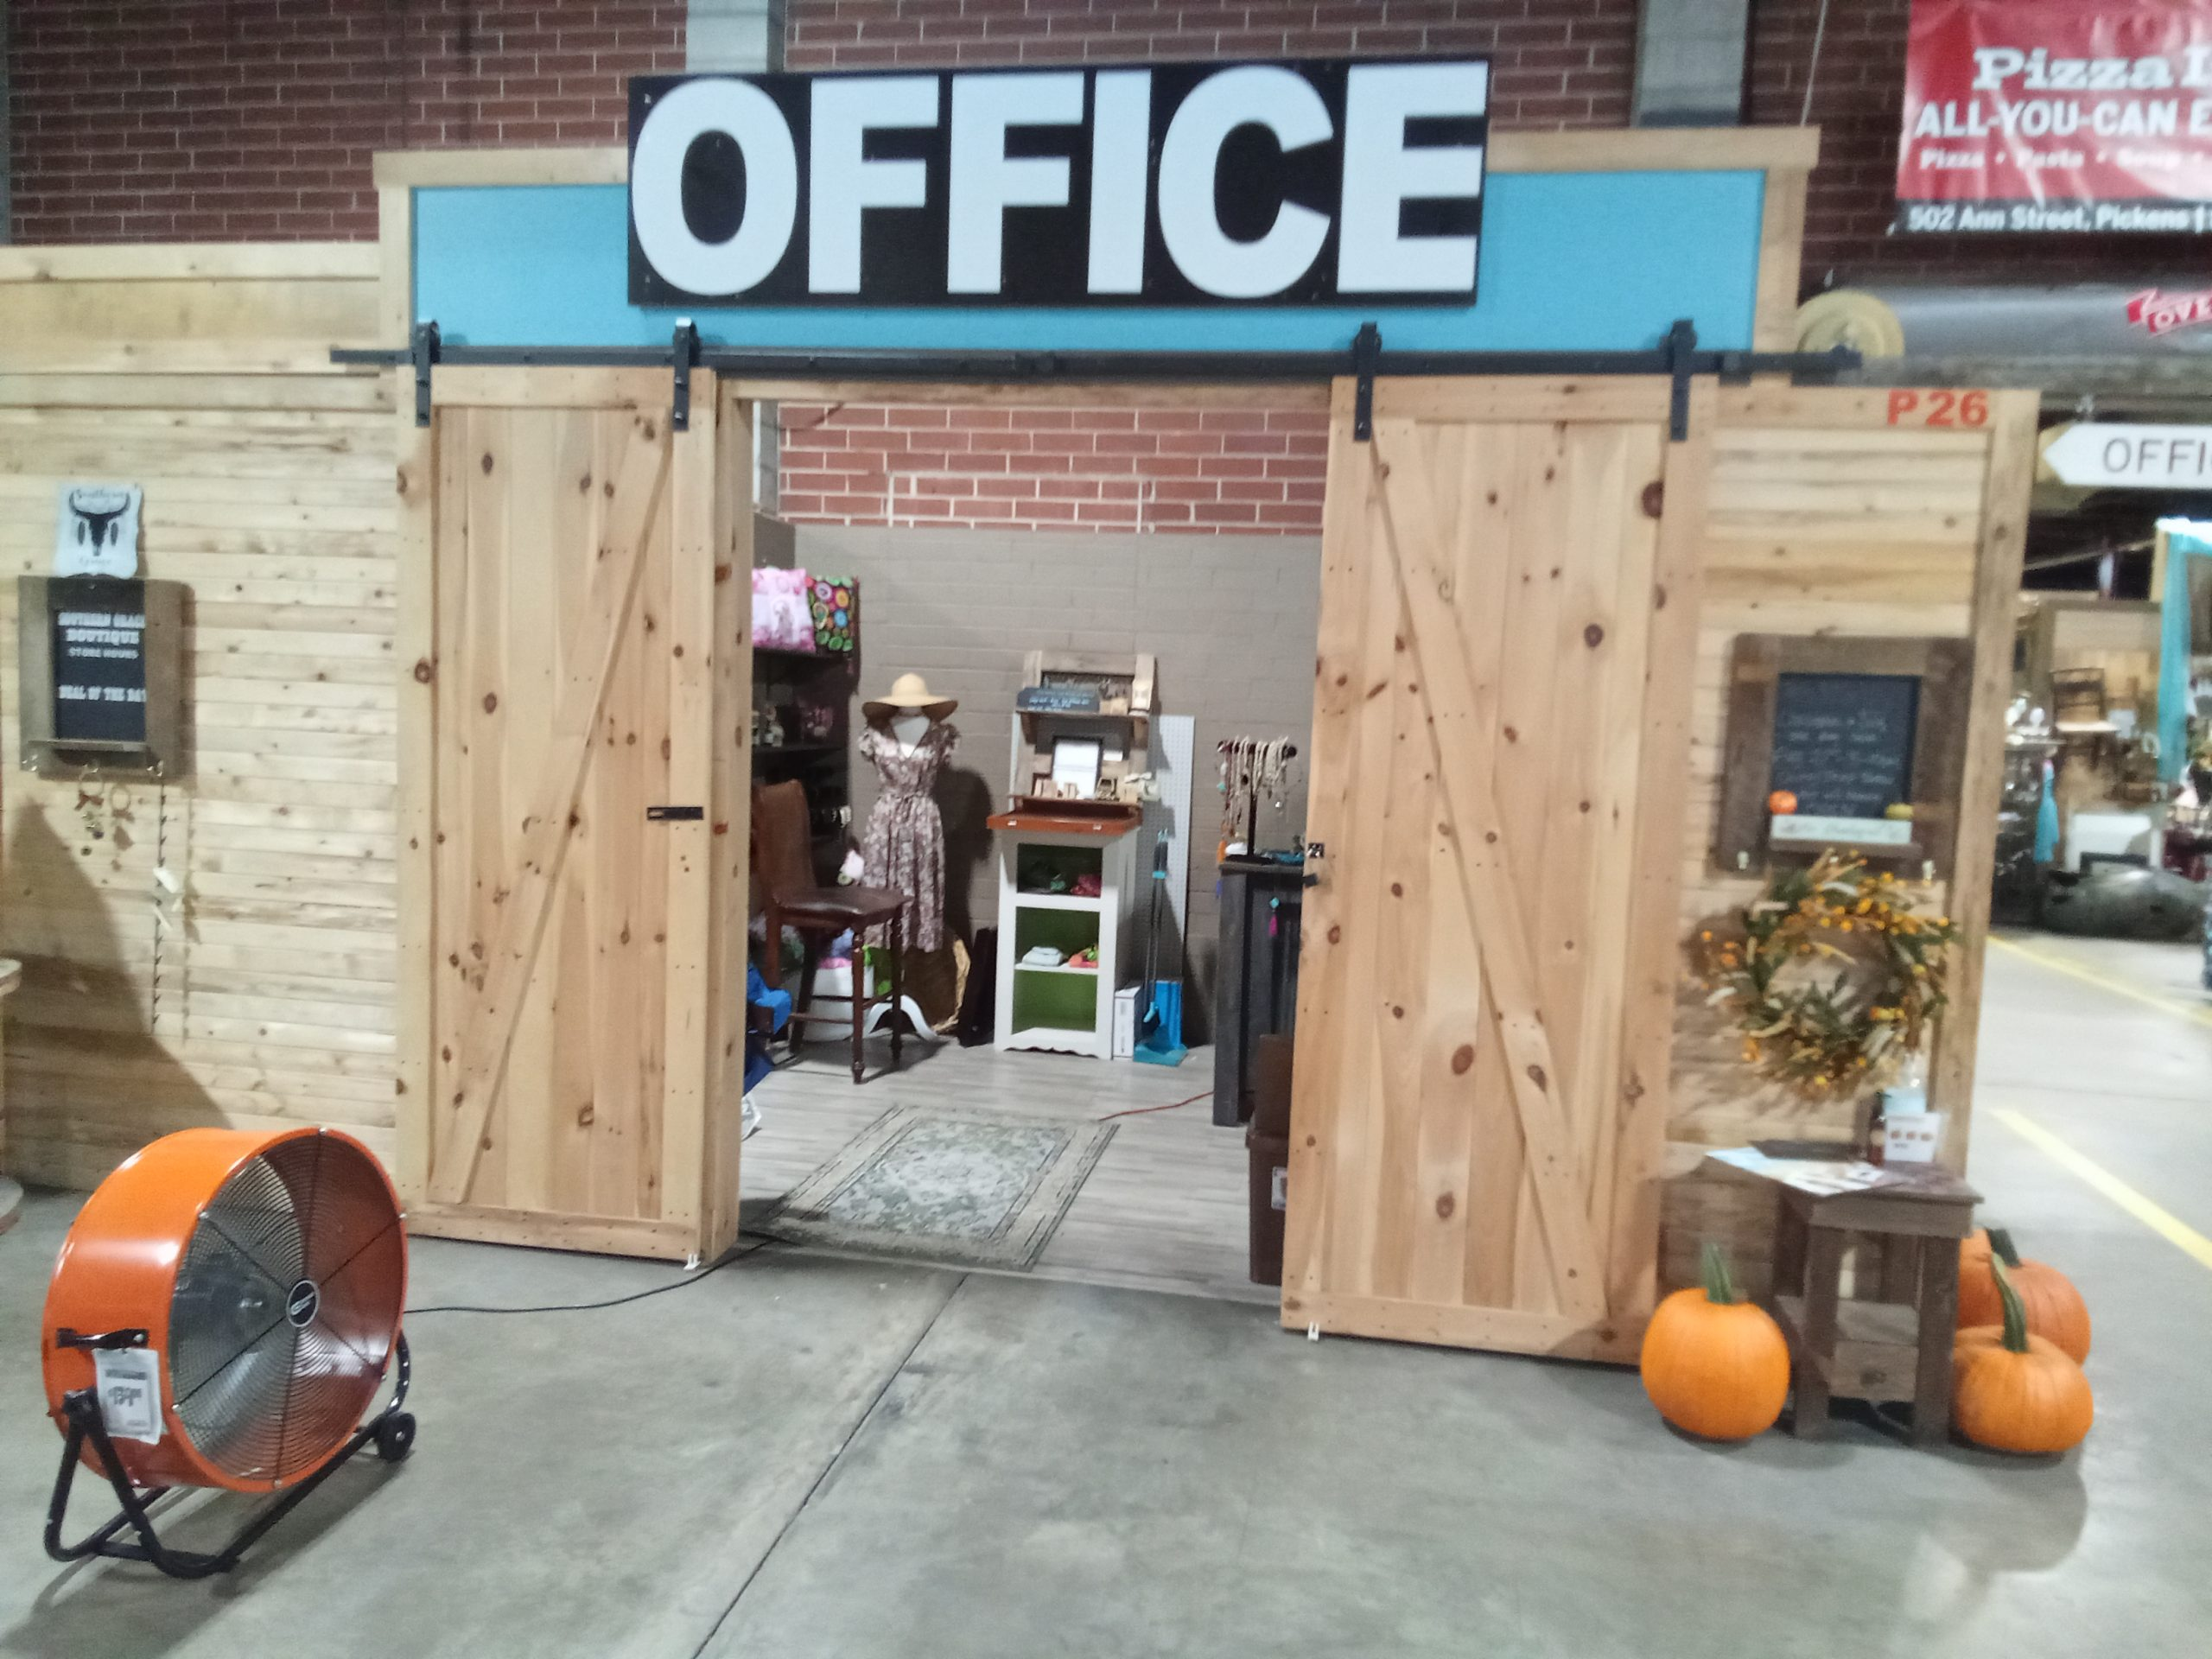 Office & Lost & Found – P26